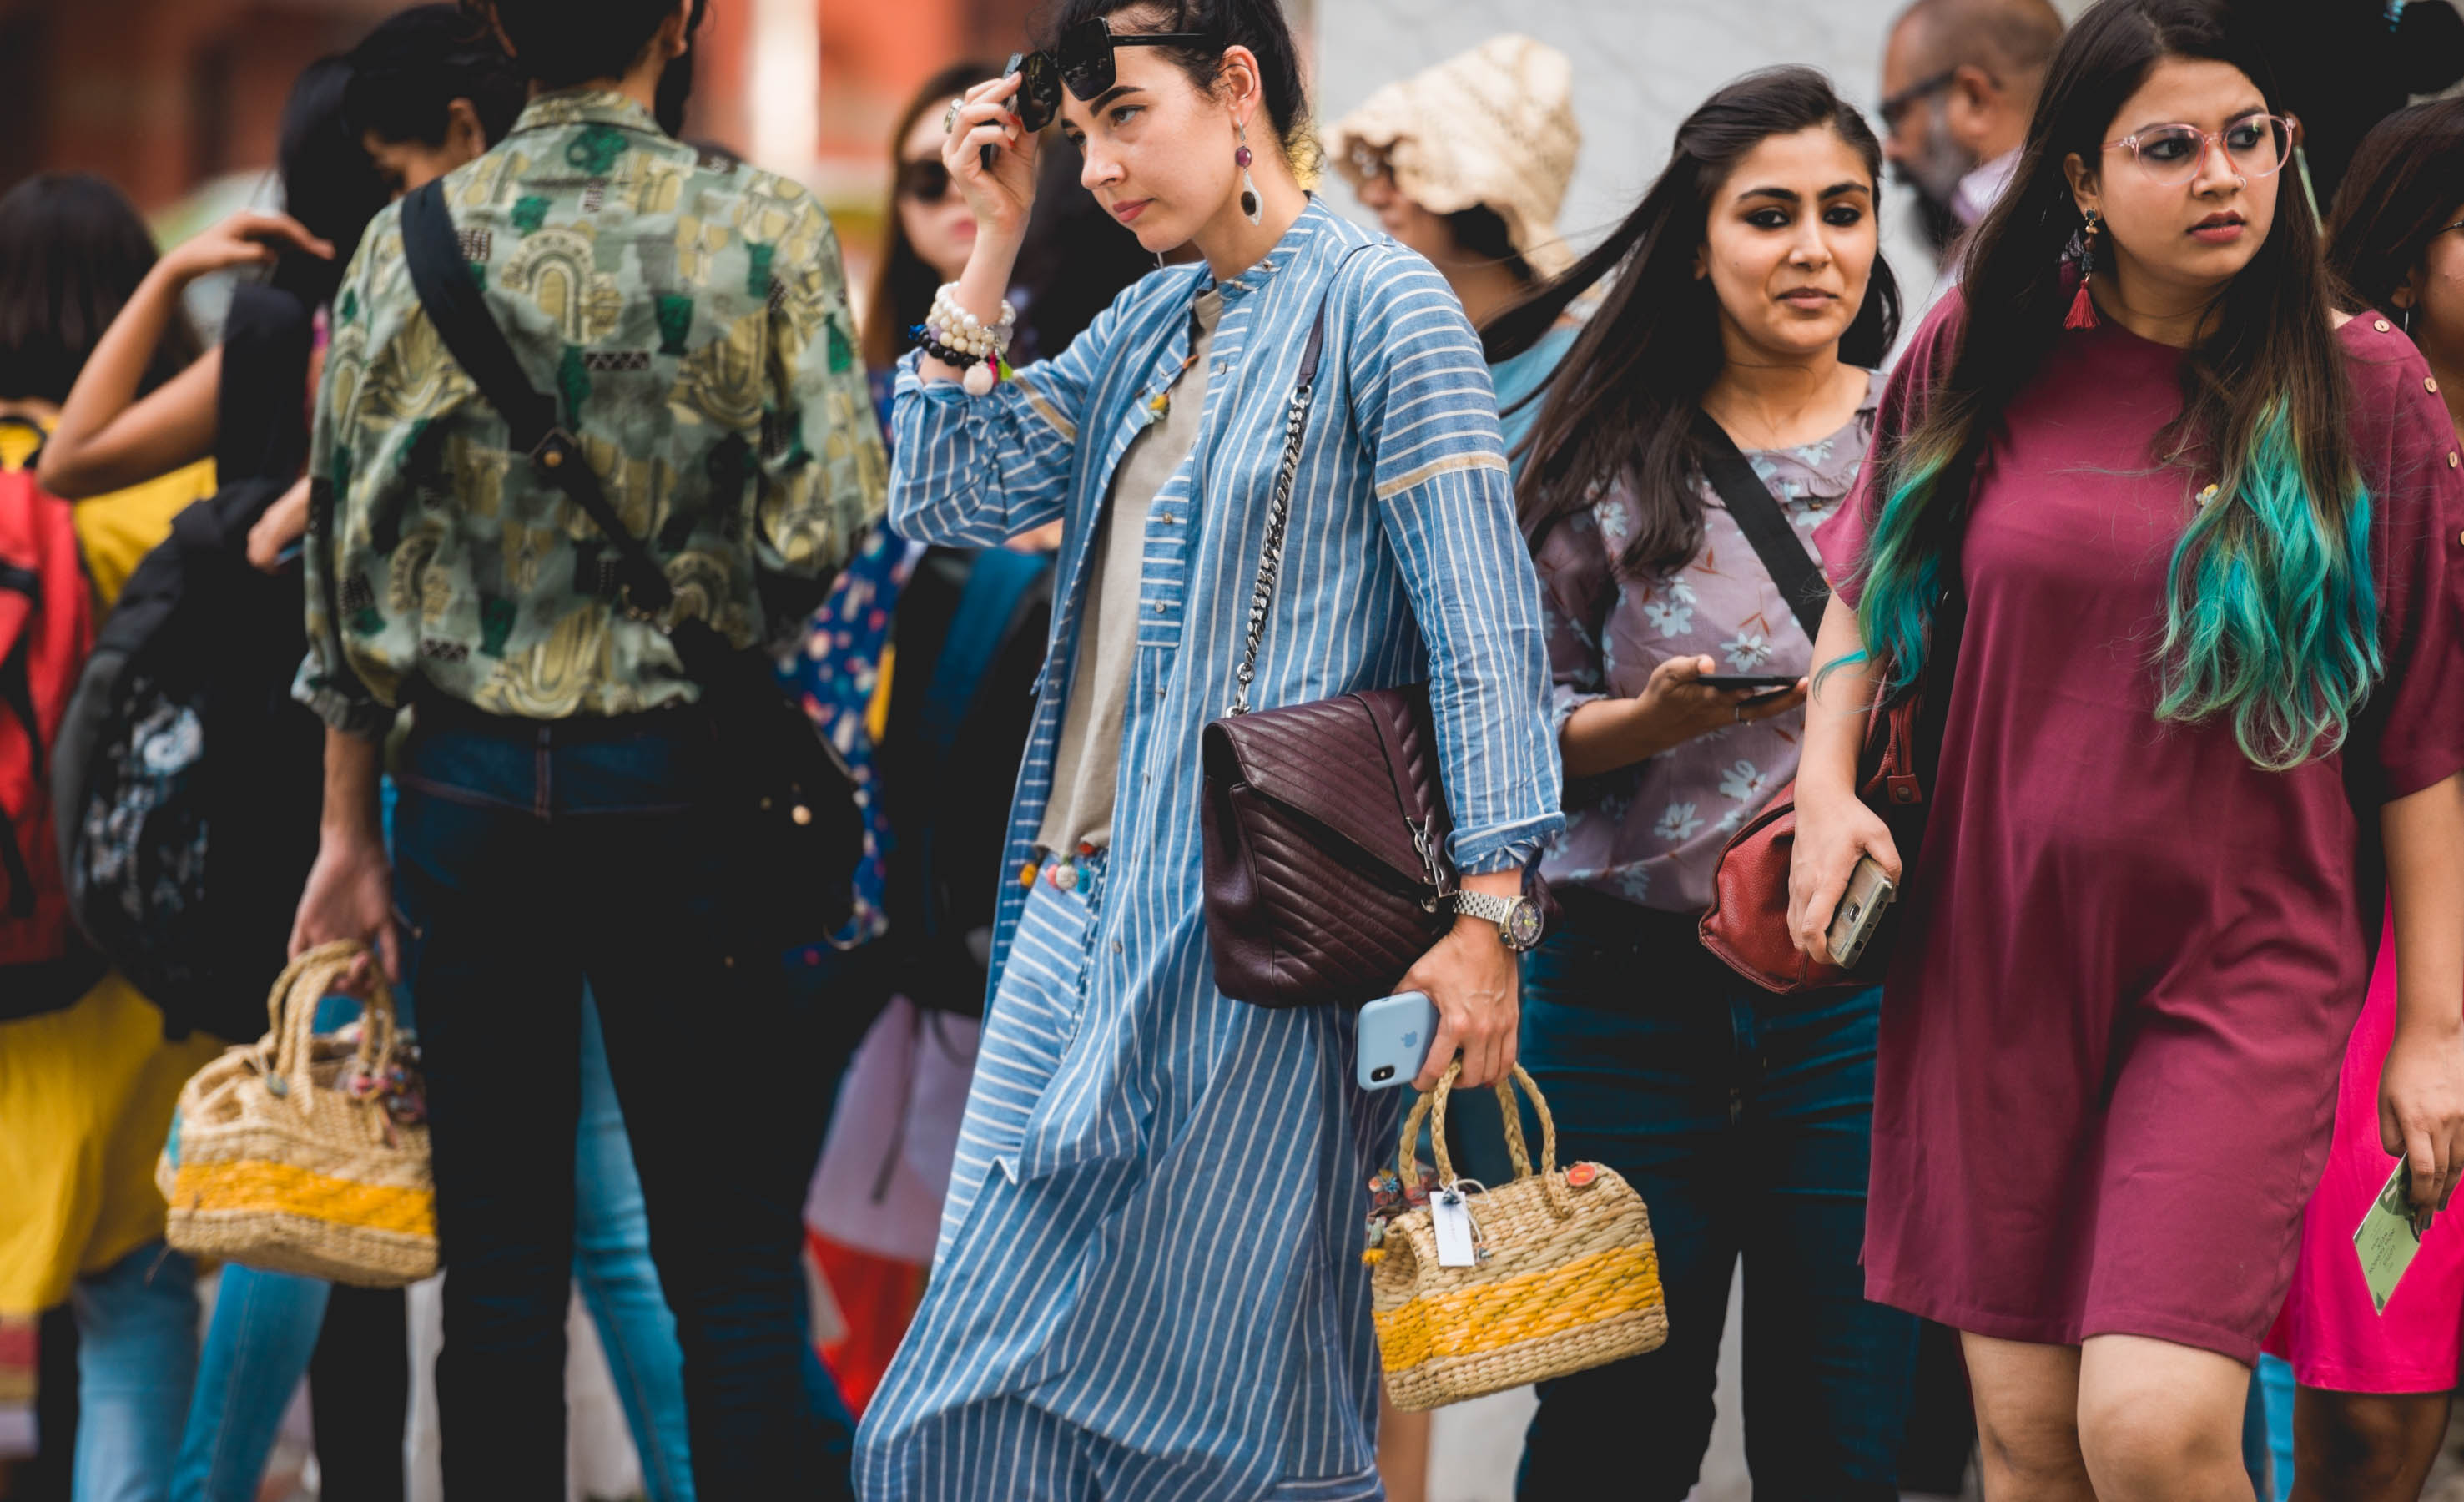 Naina Redhu, Naina.co, Naina, EyesForStreetStyle, Street Style, Eyes For Street Style, Fashion Week, Lotus Makeup India Fashion Week, LMIFWSS19, Spring Summer, 2019, New Delhi Fashion Week, India Fashion Week, LMIFW, Street Fashion, Style, Professional Photographer, Professional Blogger, Photo Blogger, Lifestyle Photographer, Lifestyle Blogger, Fashion Photographer, Fashion Blogger, Style Blogger, Speaker, Podcaster, Artist